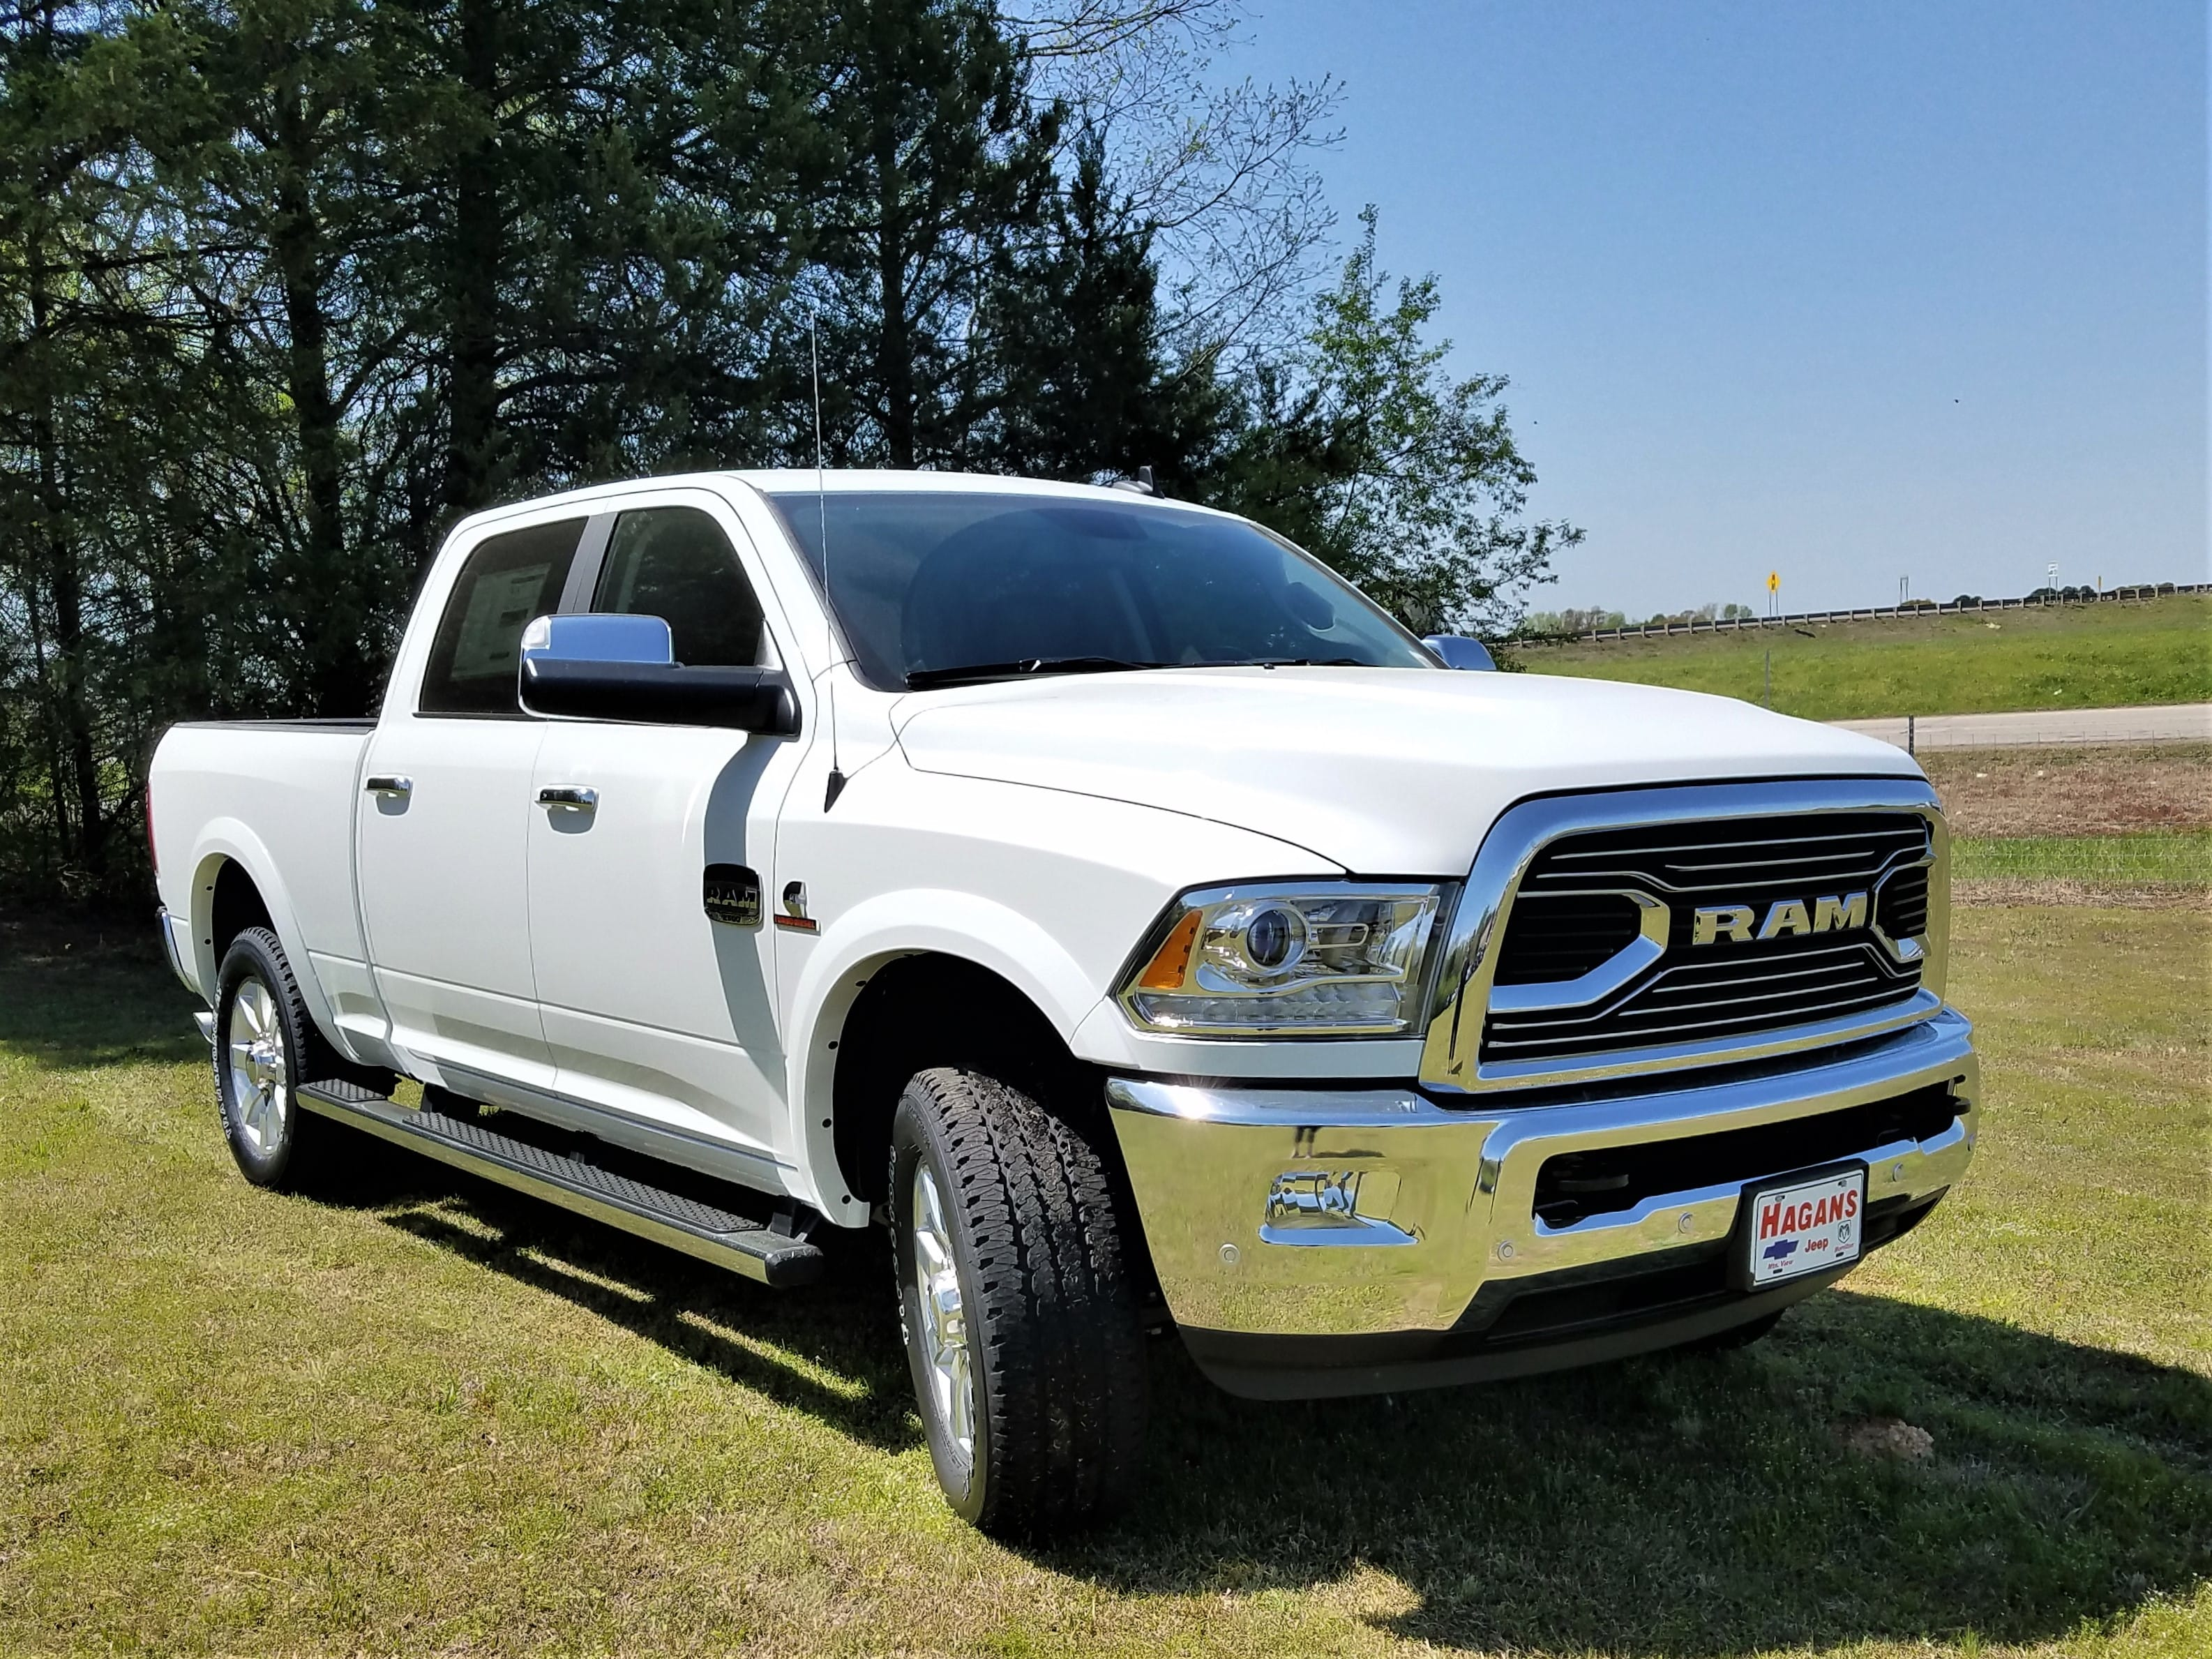 2018 Ram 2500 Crew Cab 4x4, Pickup #14762 - photo 4